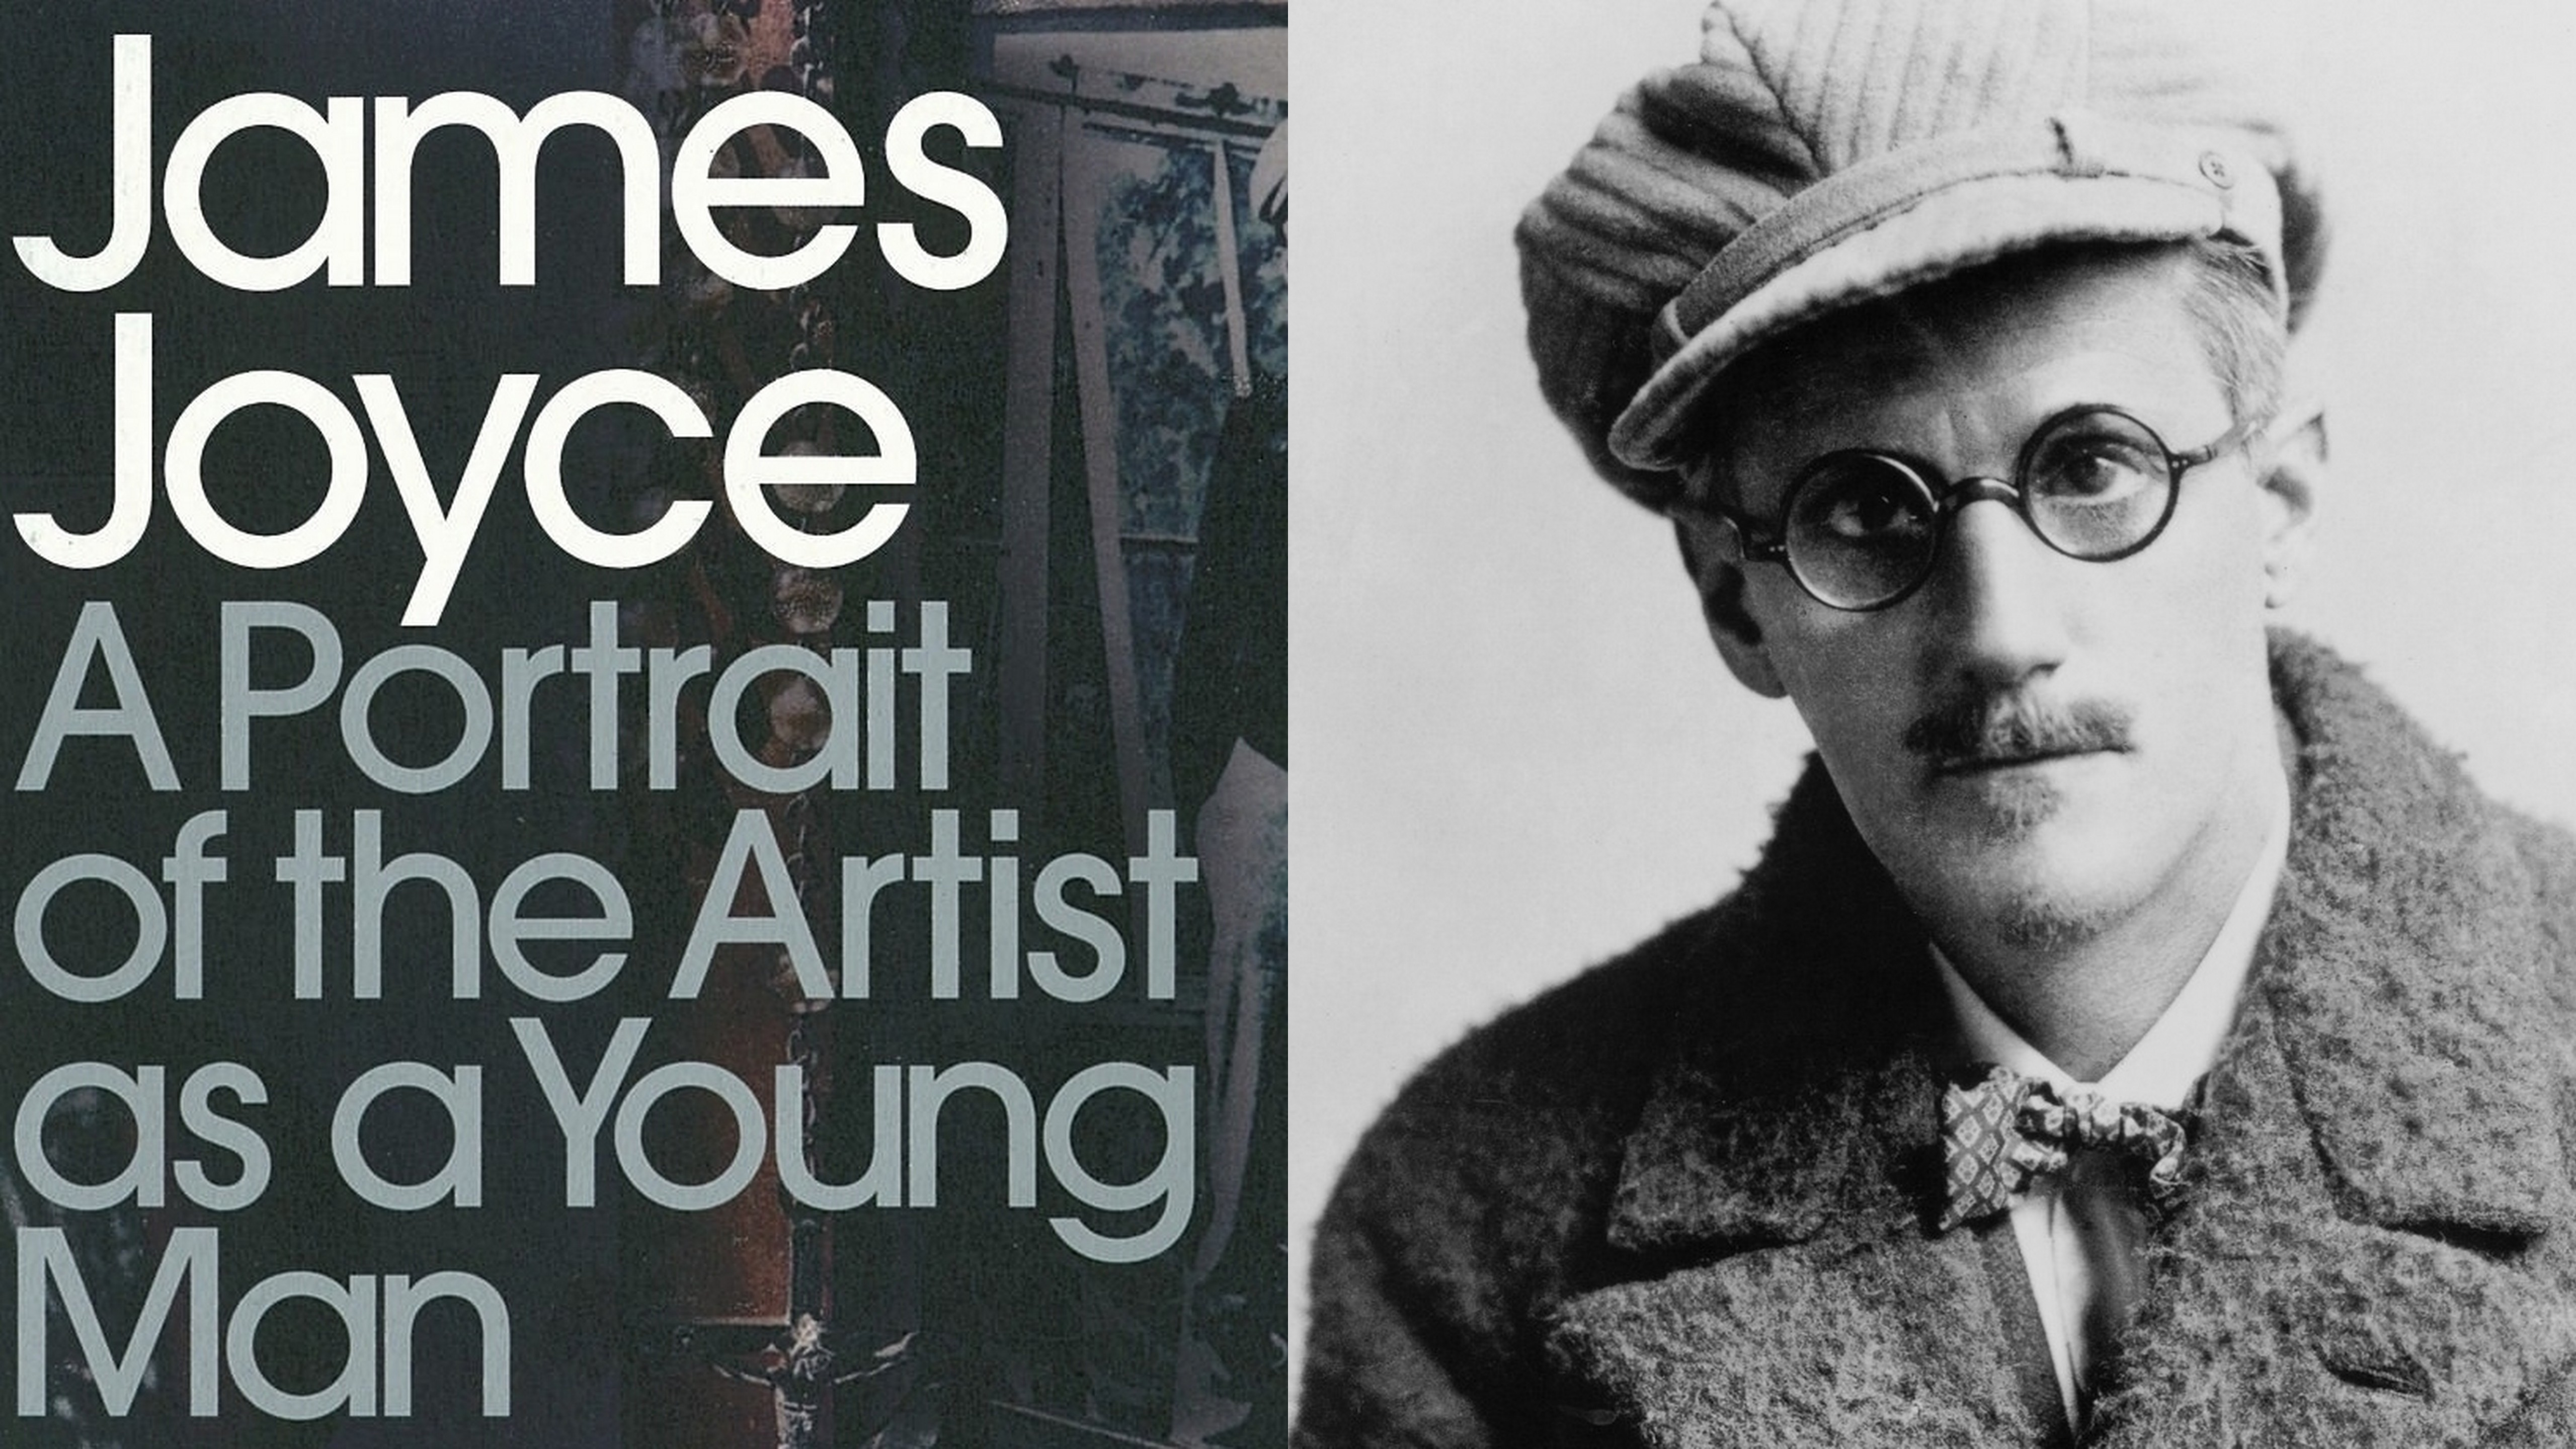 James Joyce's A Portrait of the Artist as a Young Man: Themes